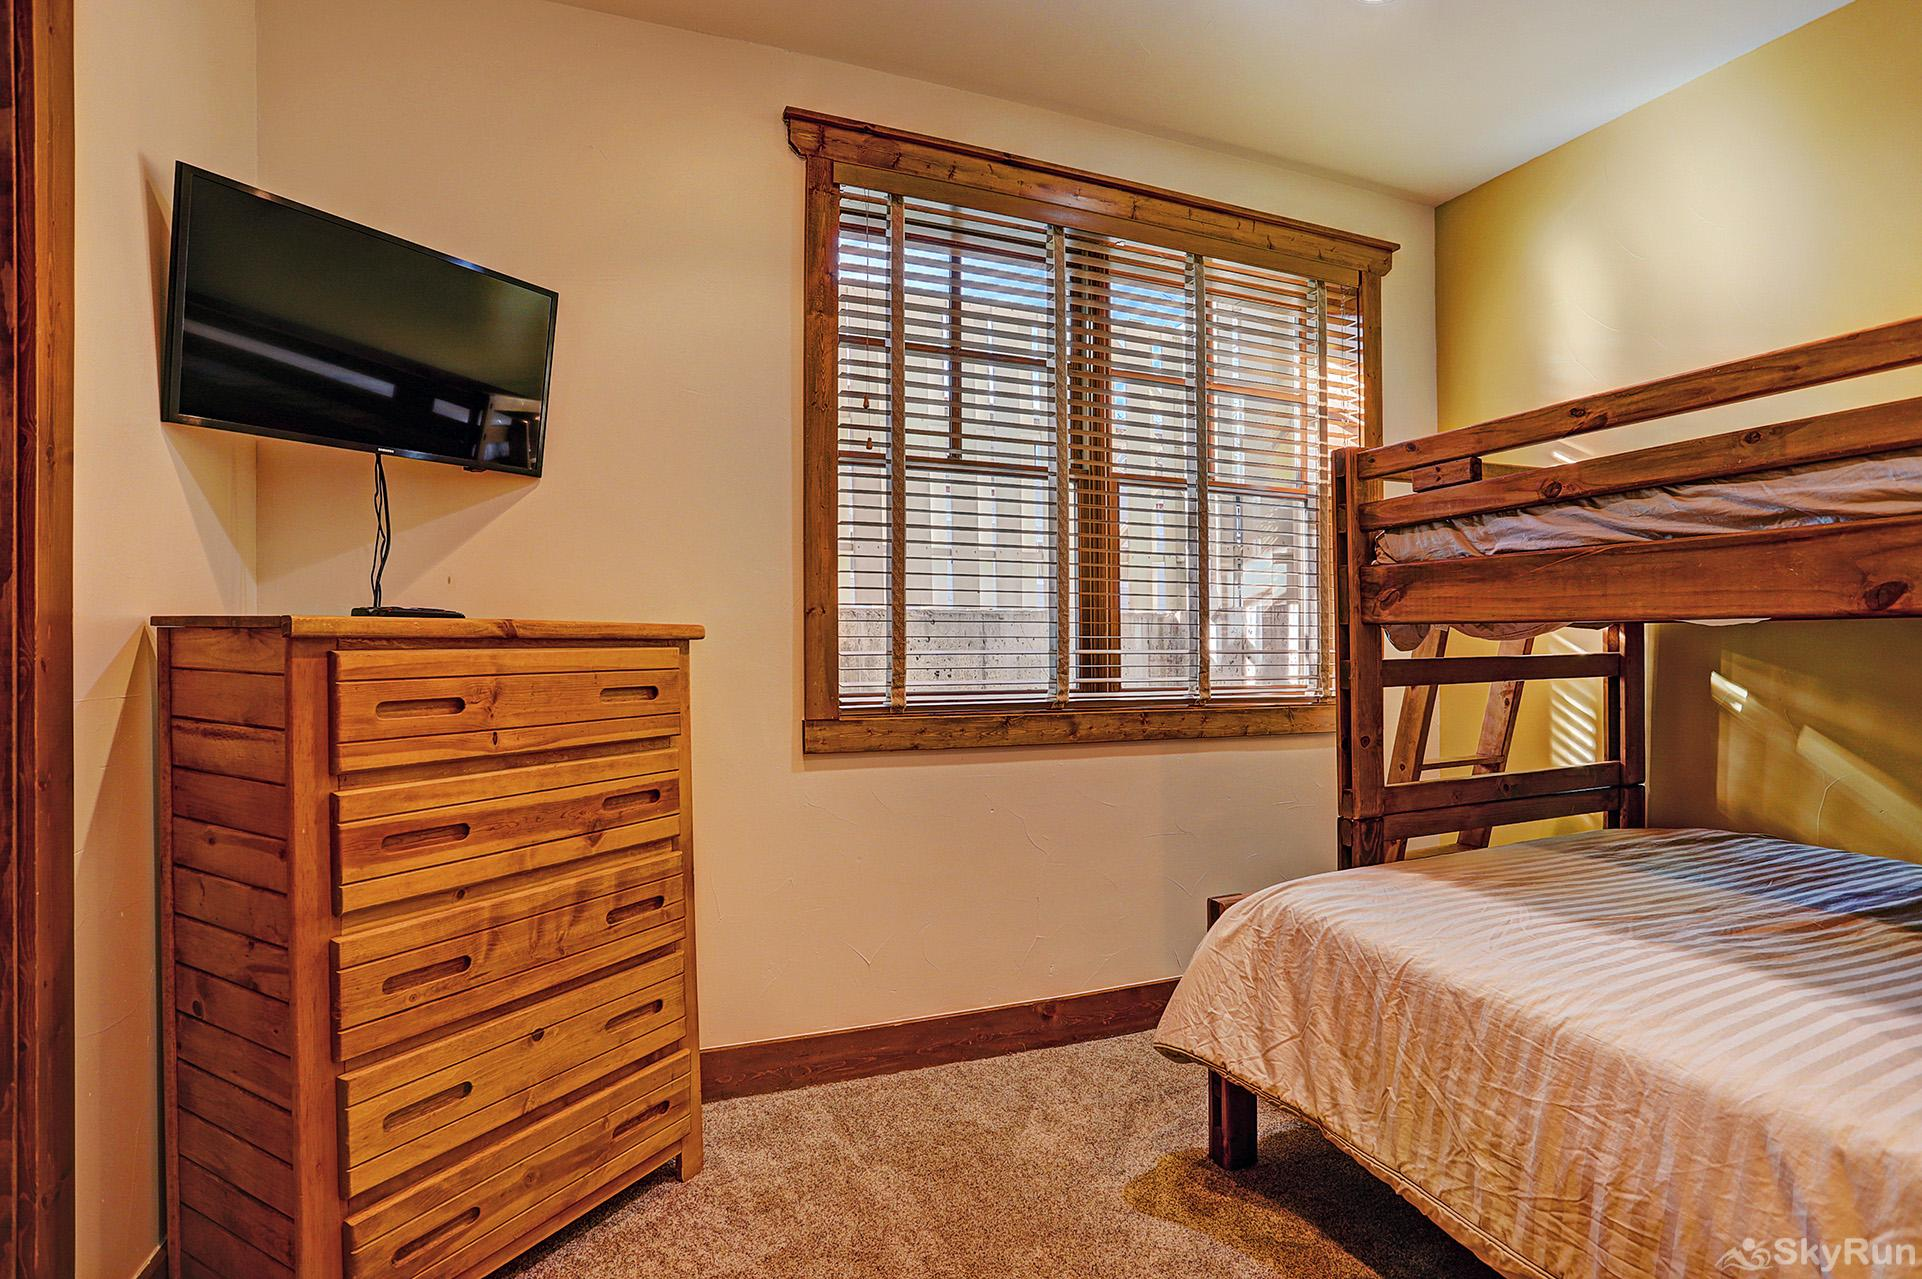 Mountain Ridge Chalet Lower level bunk room with ensuite bath and flat screen TV